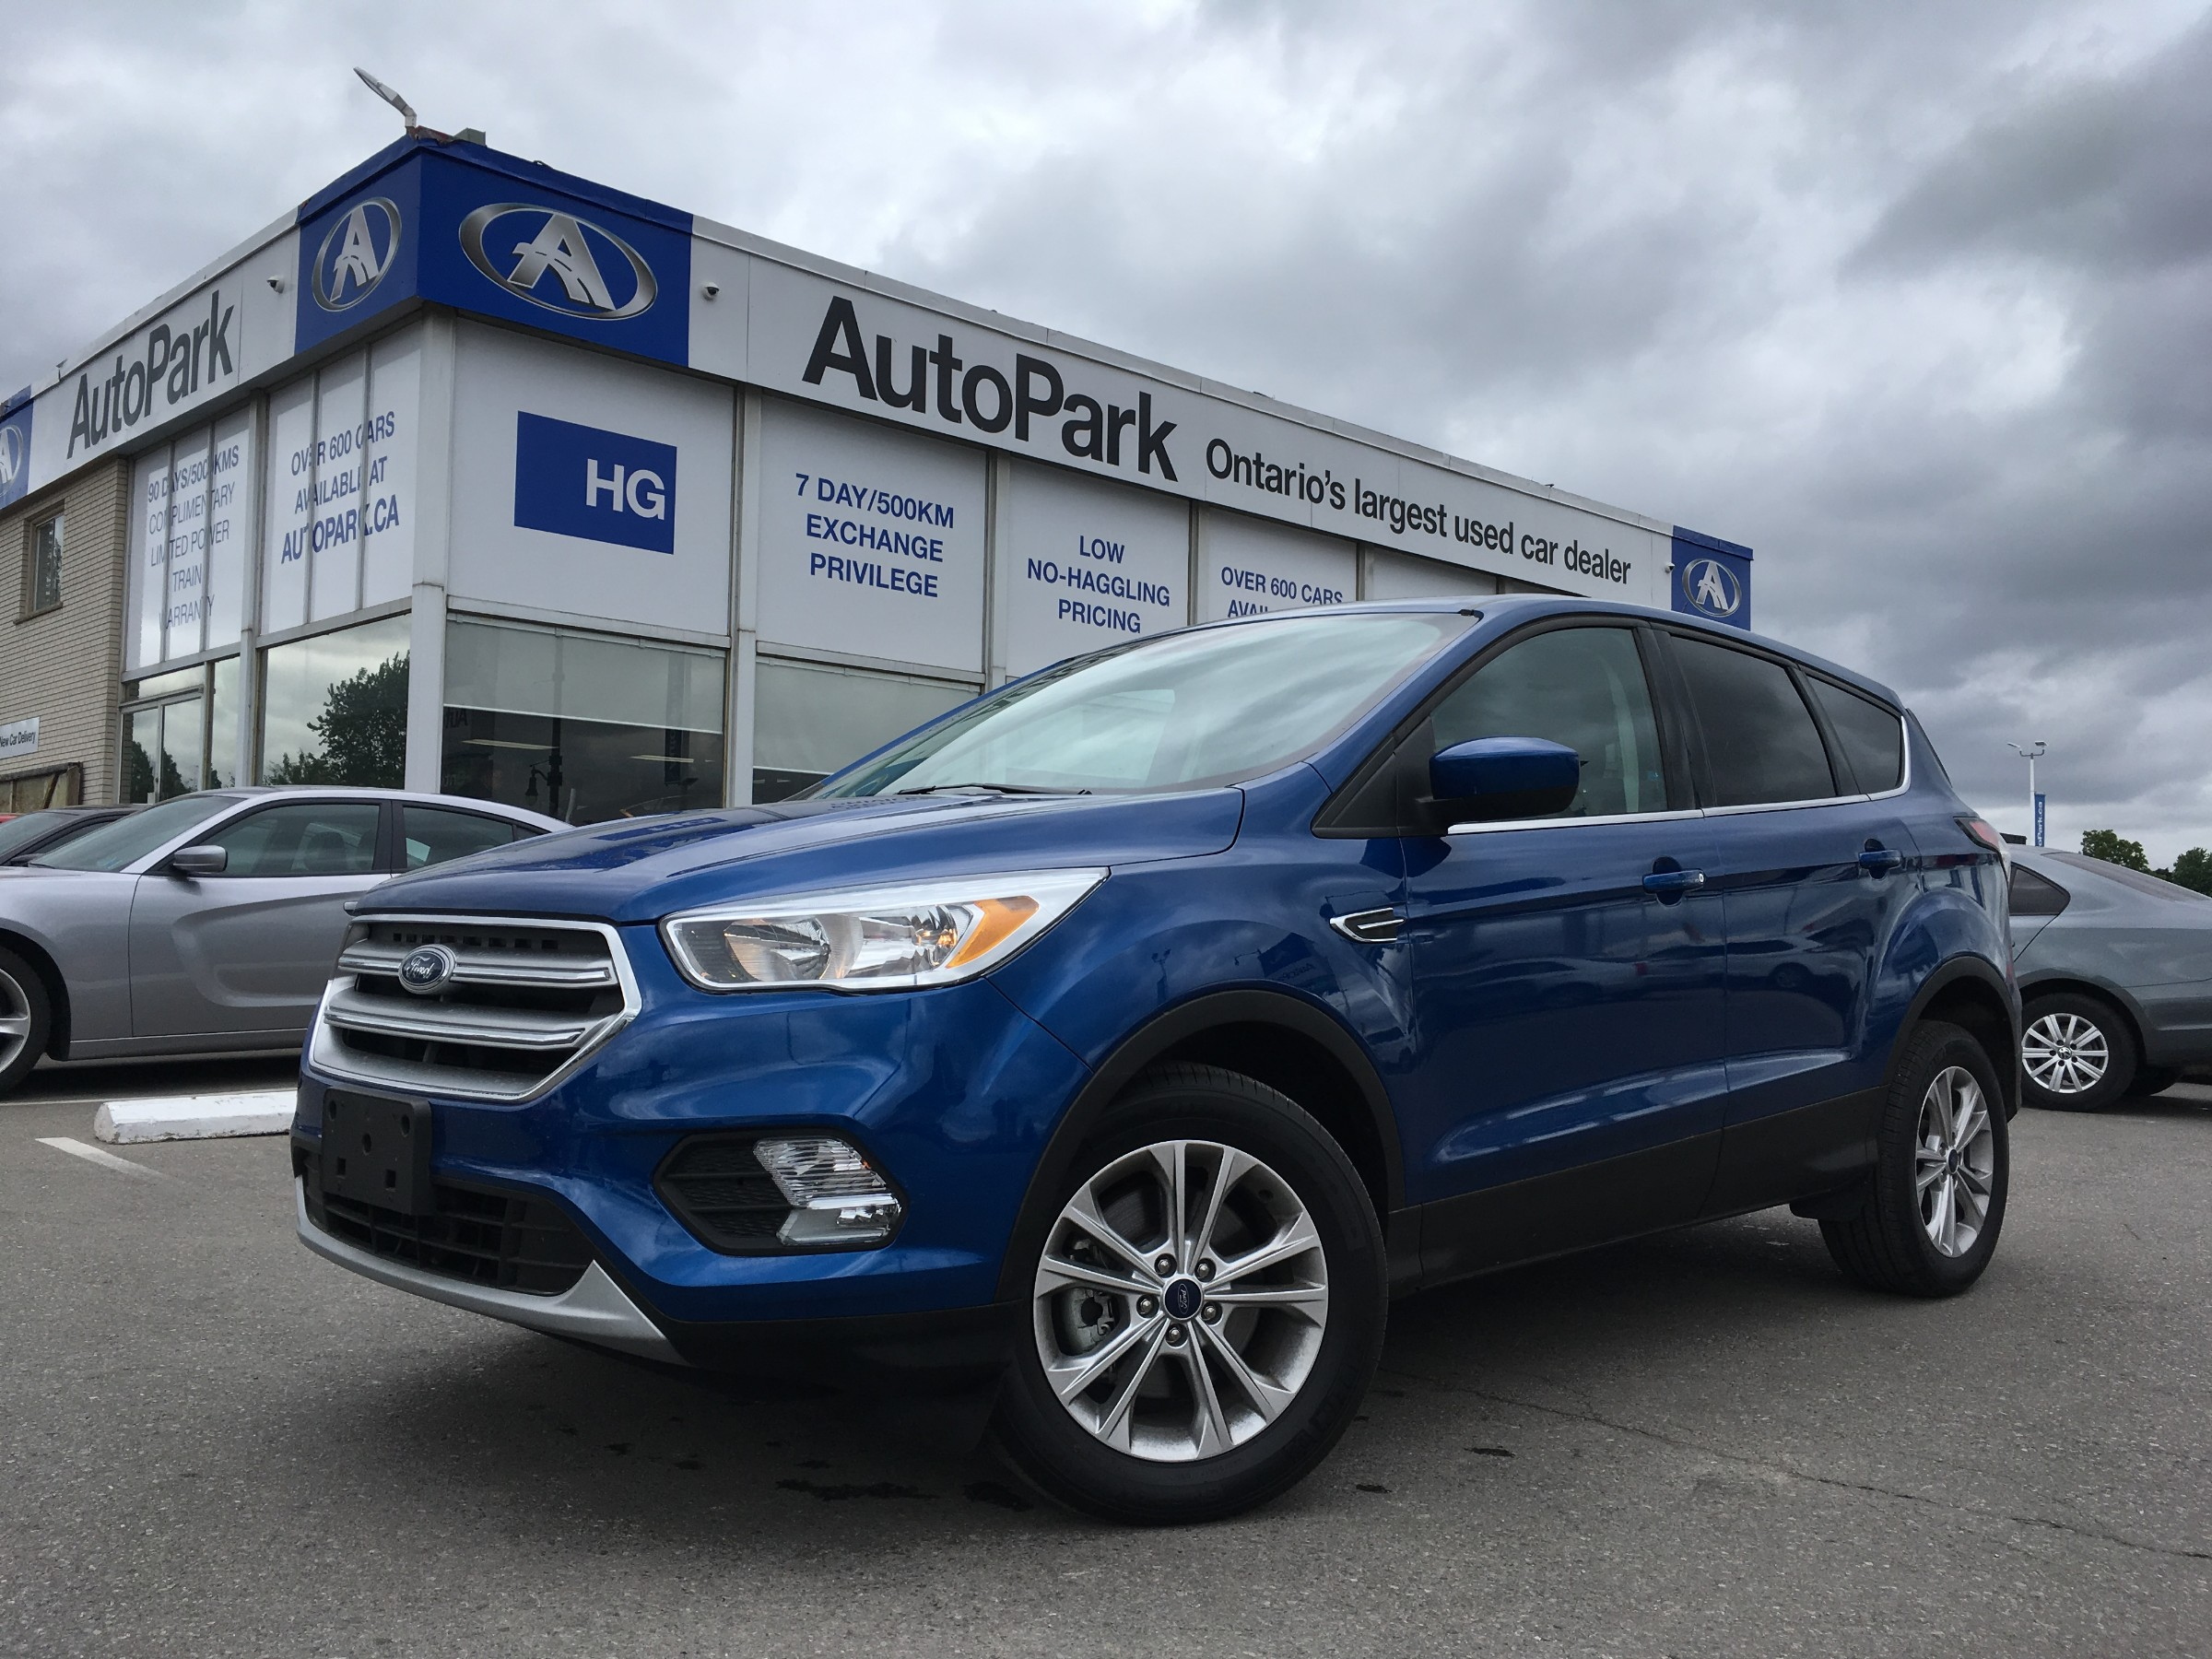 Used Ford Escape For Sale Brantford, ON - CarGurus